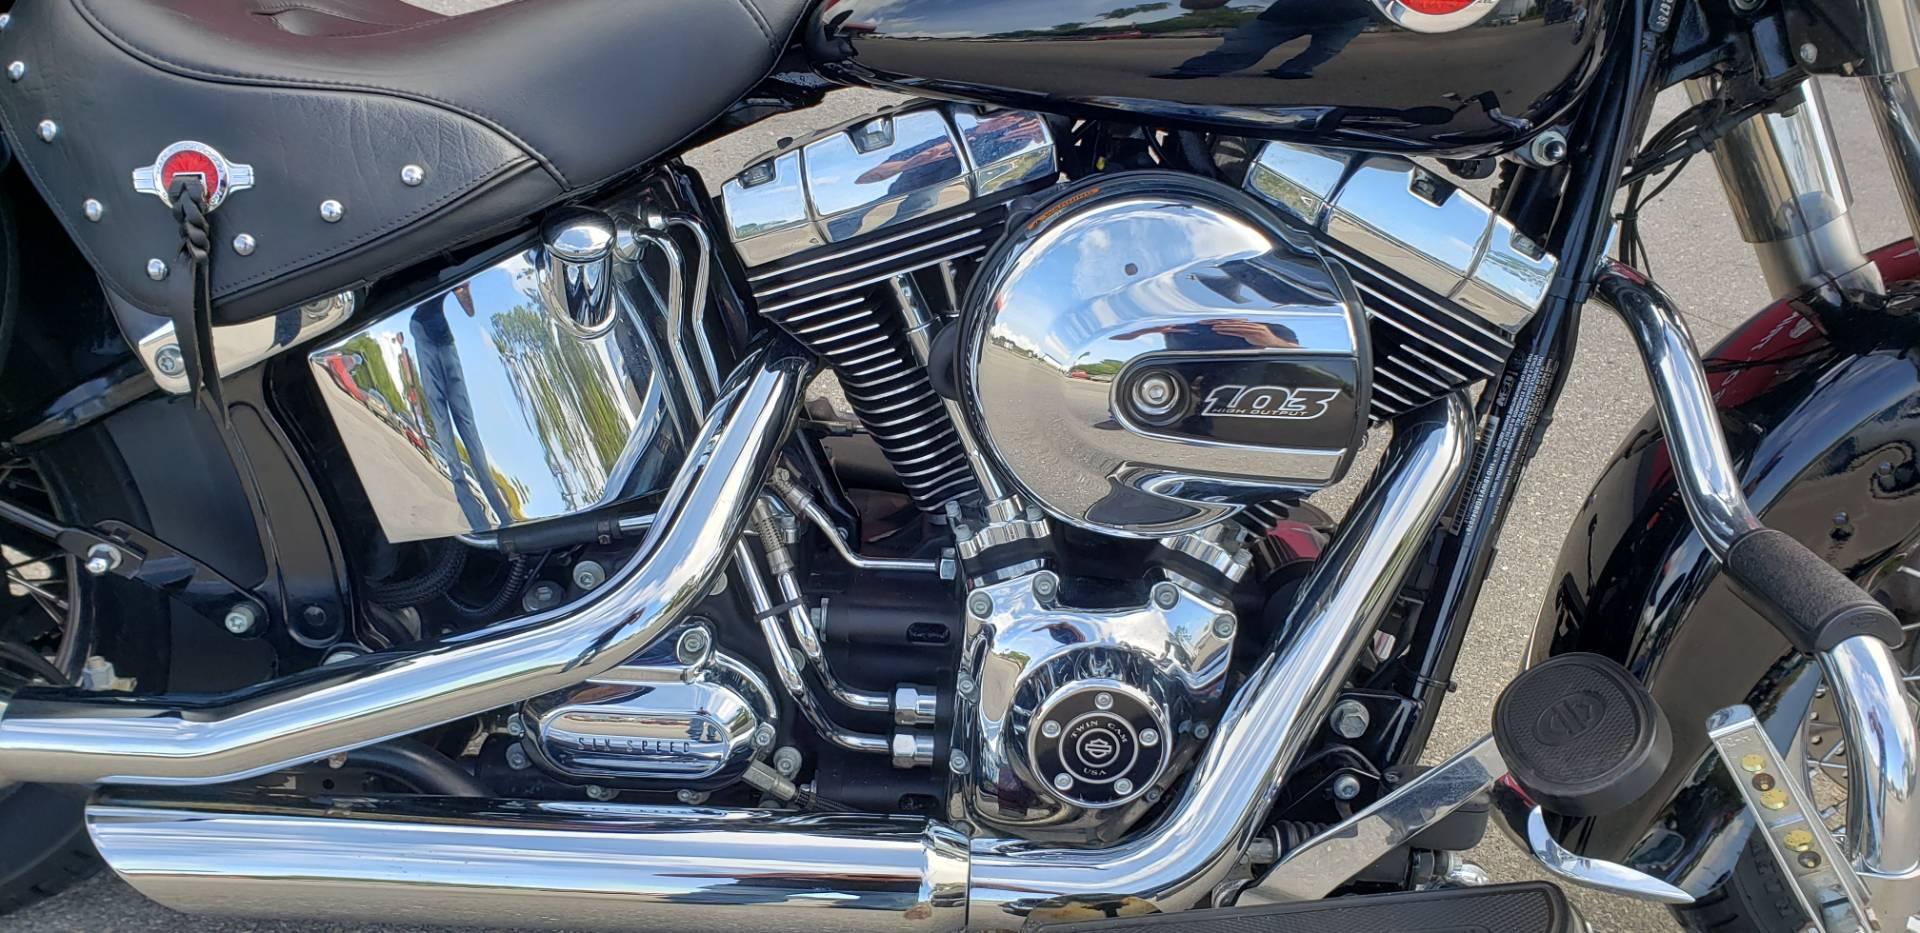 2016 Harley-Davidson Heritage Softail® Classic in Fort Myers, Florida - Photo 6